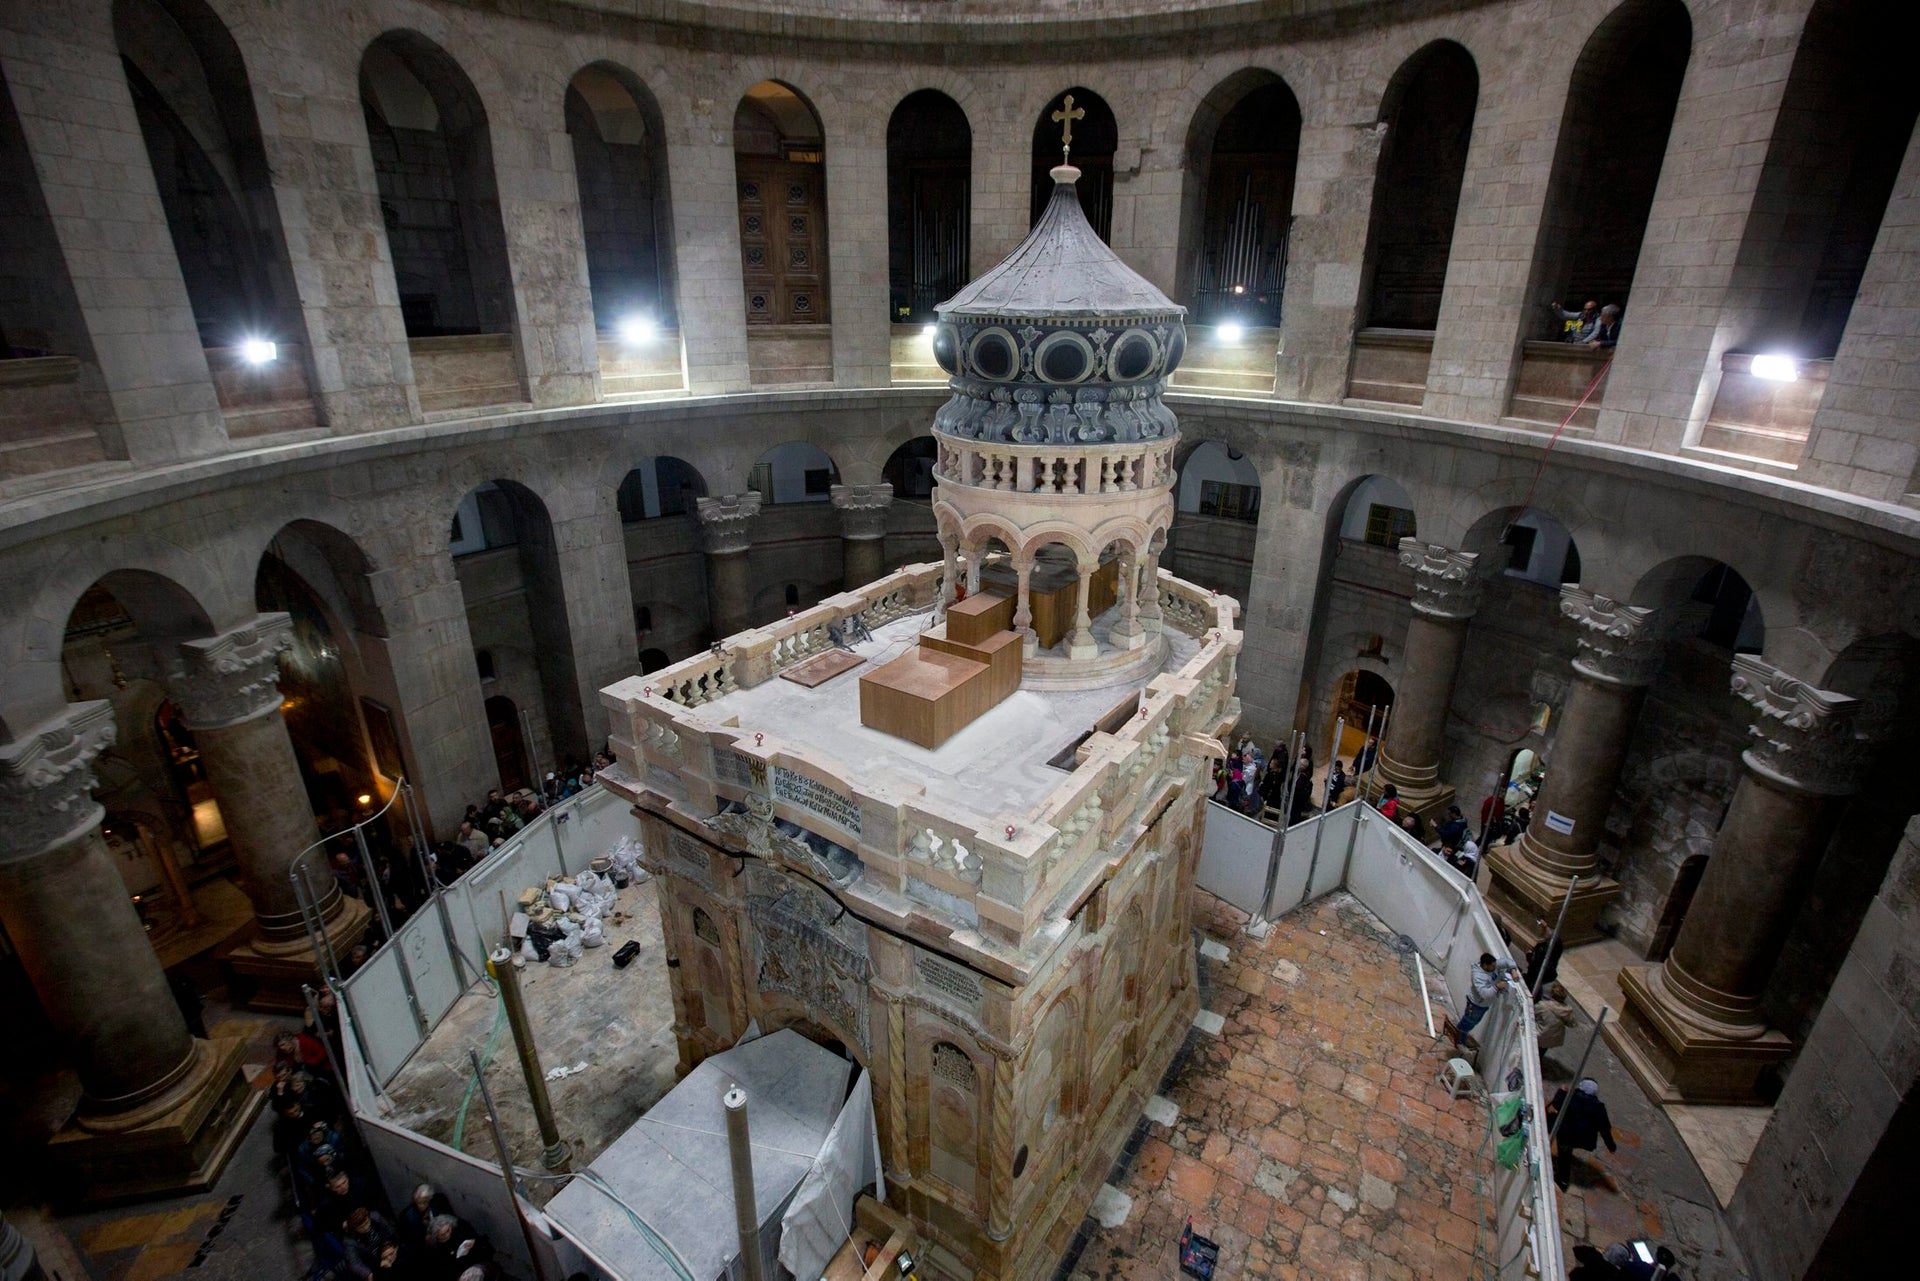 The renovated Edicule is seen in the Church of the Holy Sepulchre, traditionally believed to be the site of the crucifixion of Jesus Christ, in Jerusalem's old city Monday, Mar. 20, 2017. A Greek restoration team has completed a historic renovation of the Edicule, the shrine that tradition says houses the cave where Jesus was buried and rose to heaven.